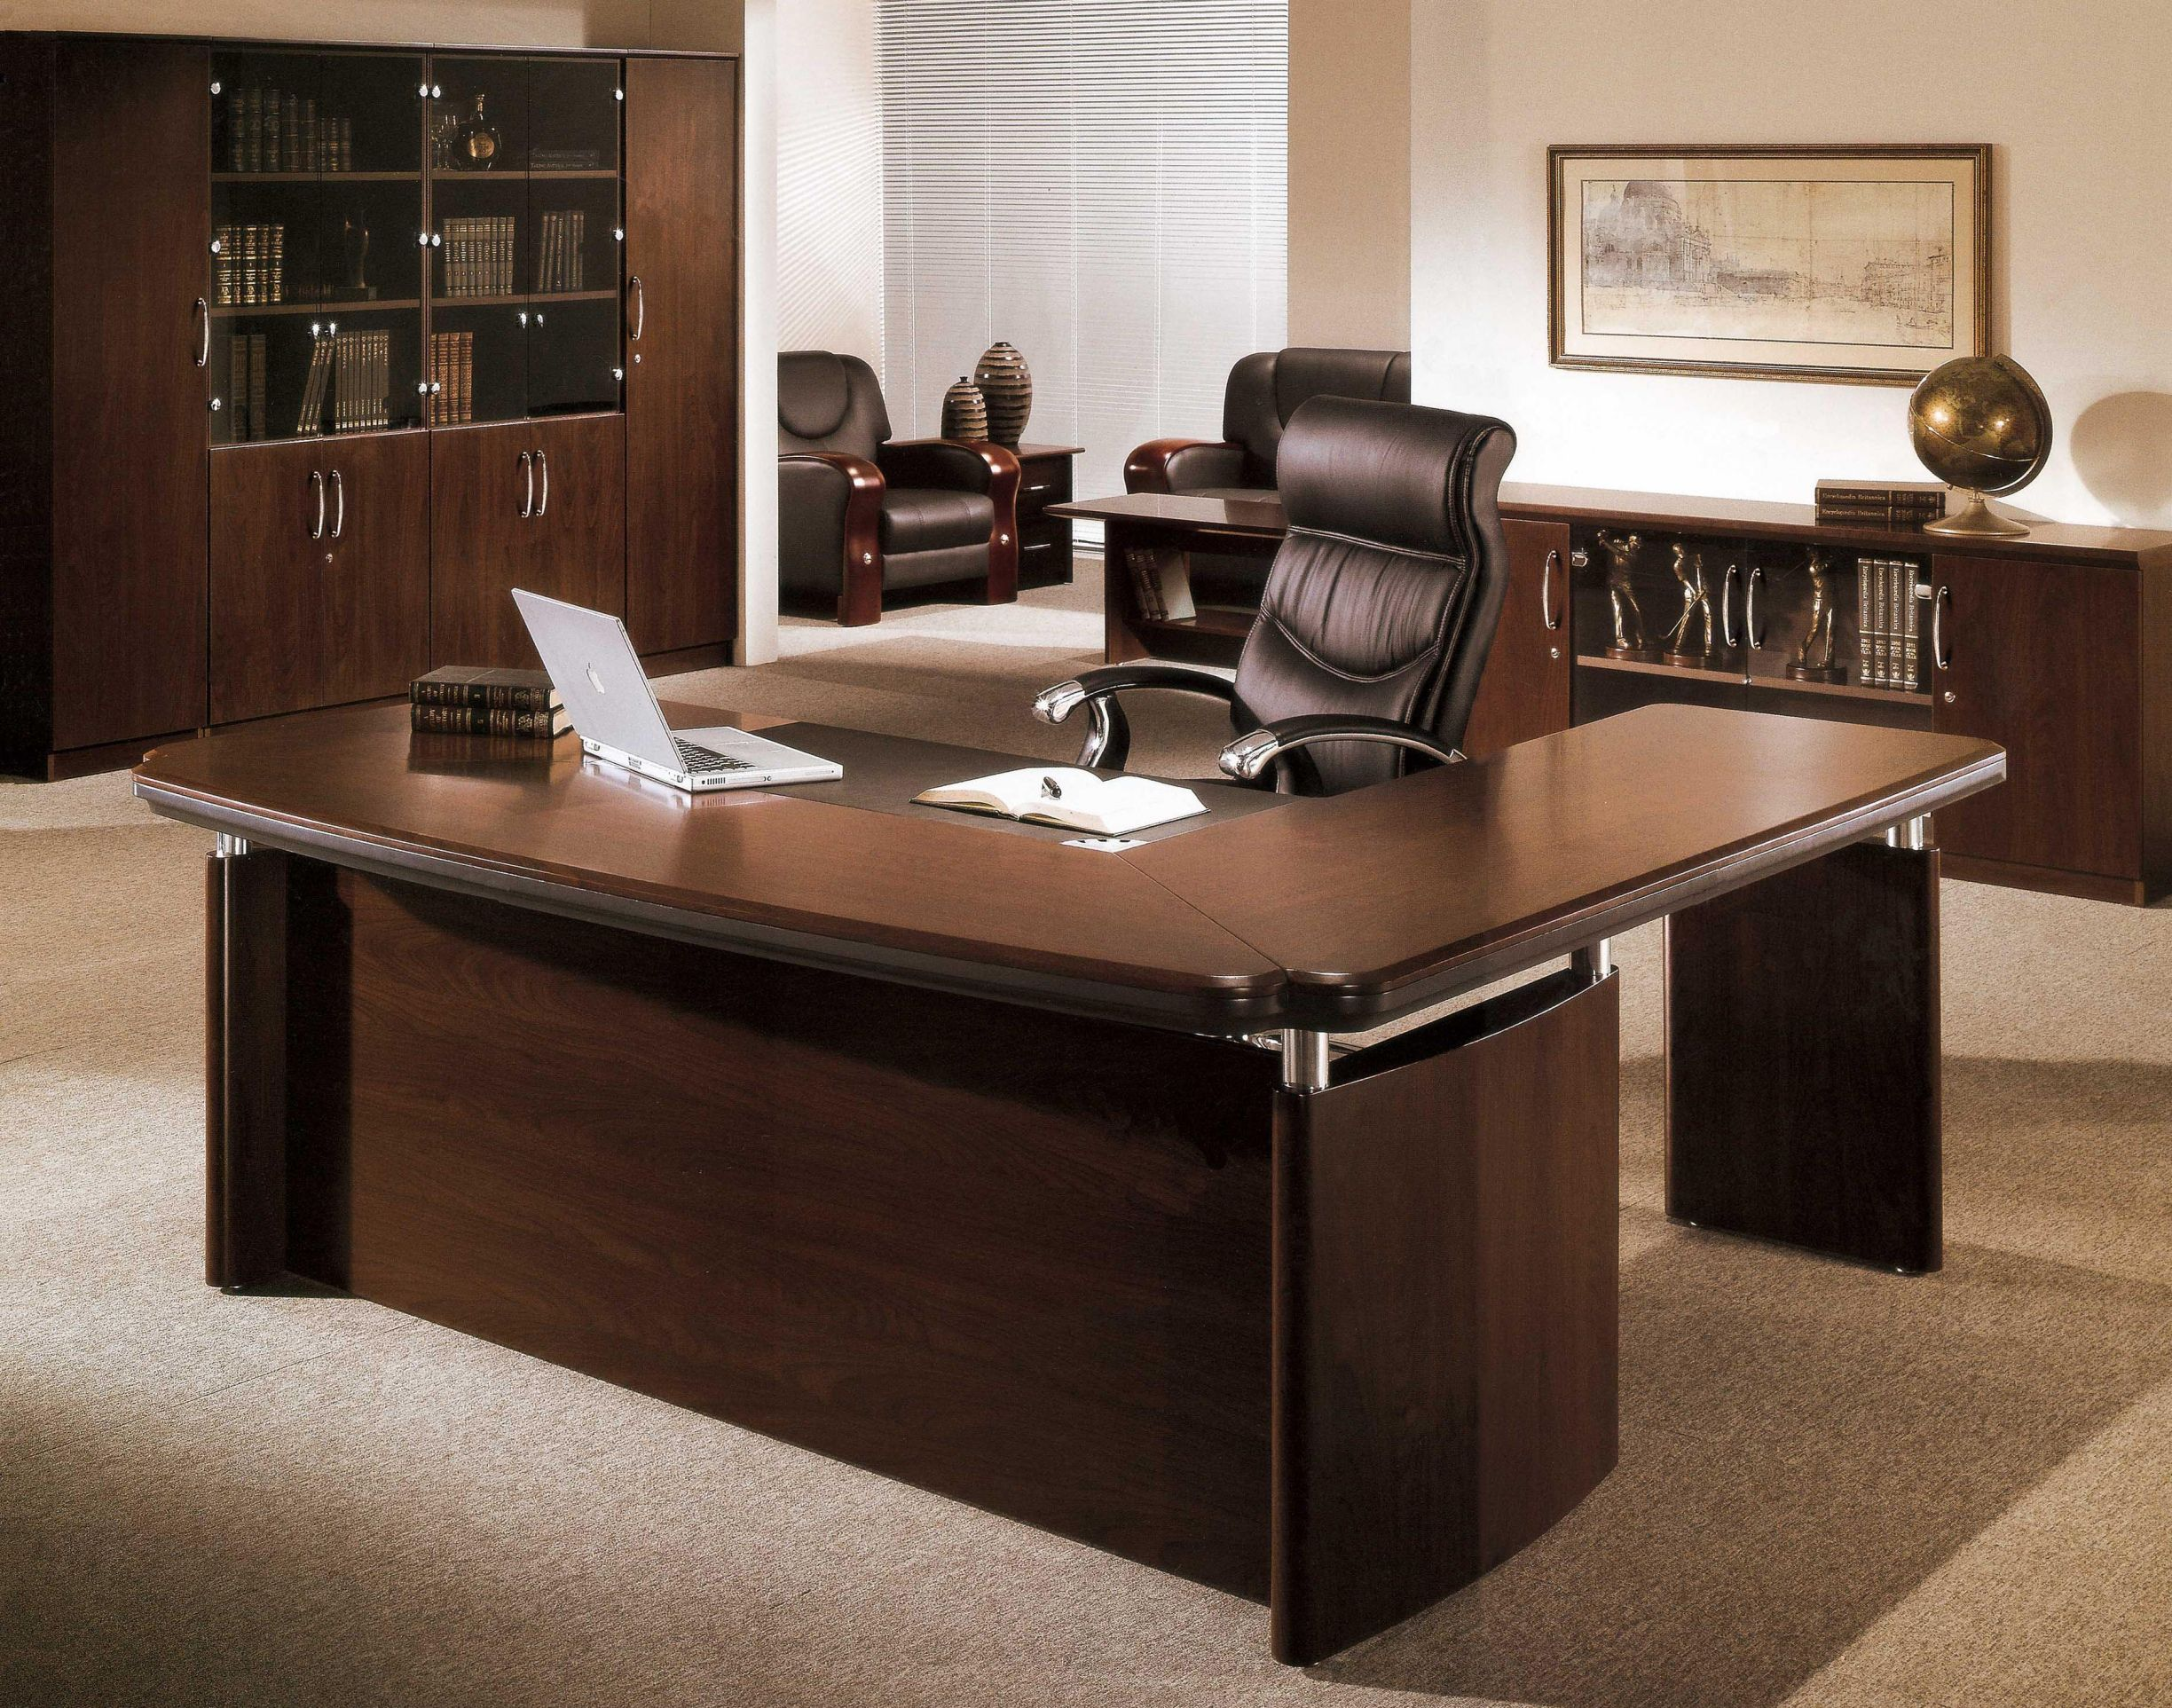 Bon Small Office Executive Desk   Best Office Desk Chair Check More At Http://